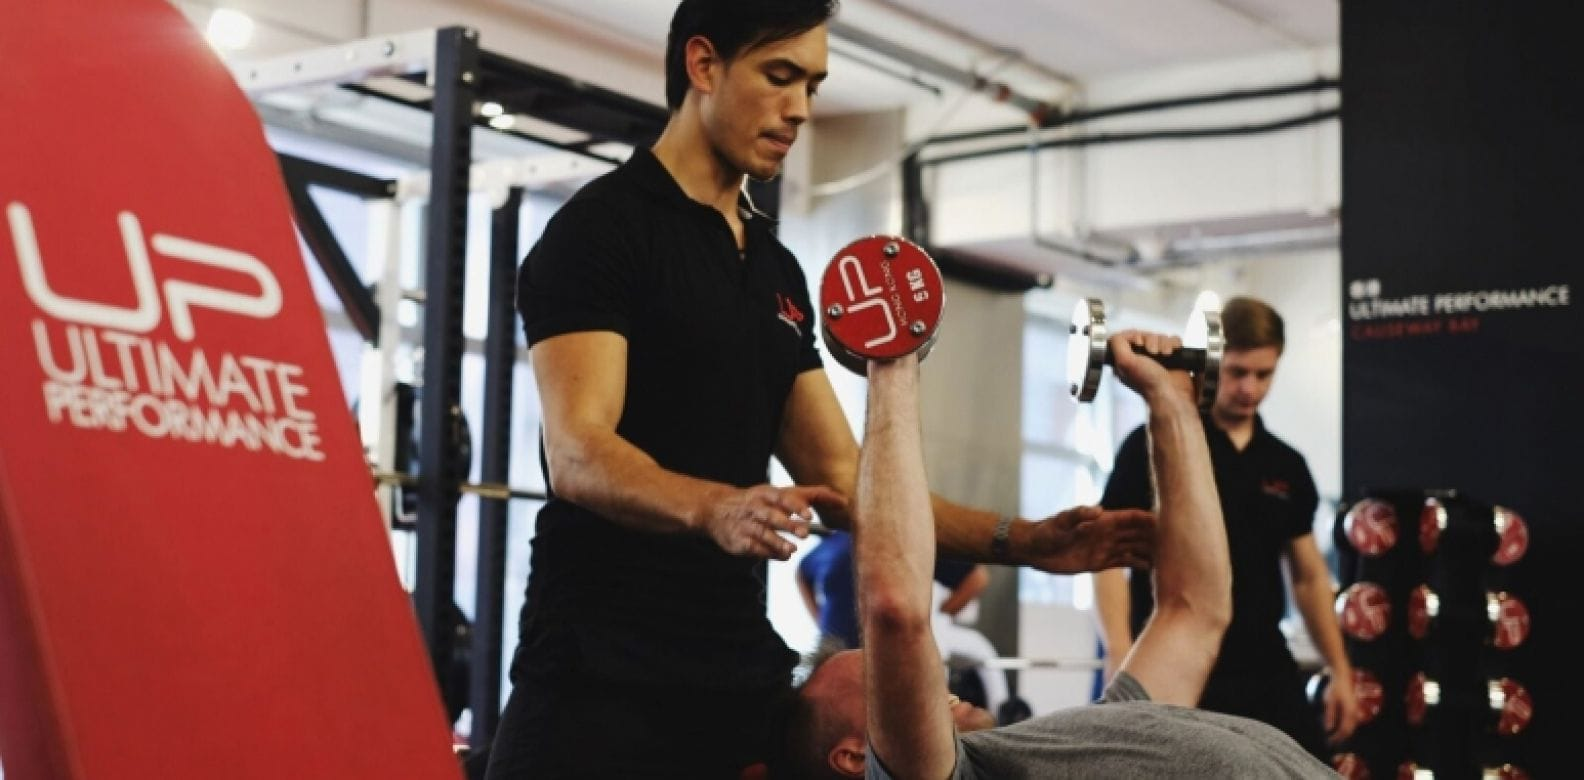 weight lifting, weight training, fitness advice, personal trainer